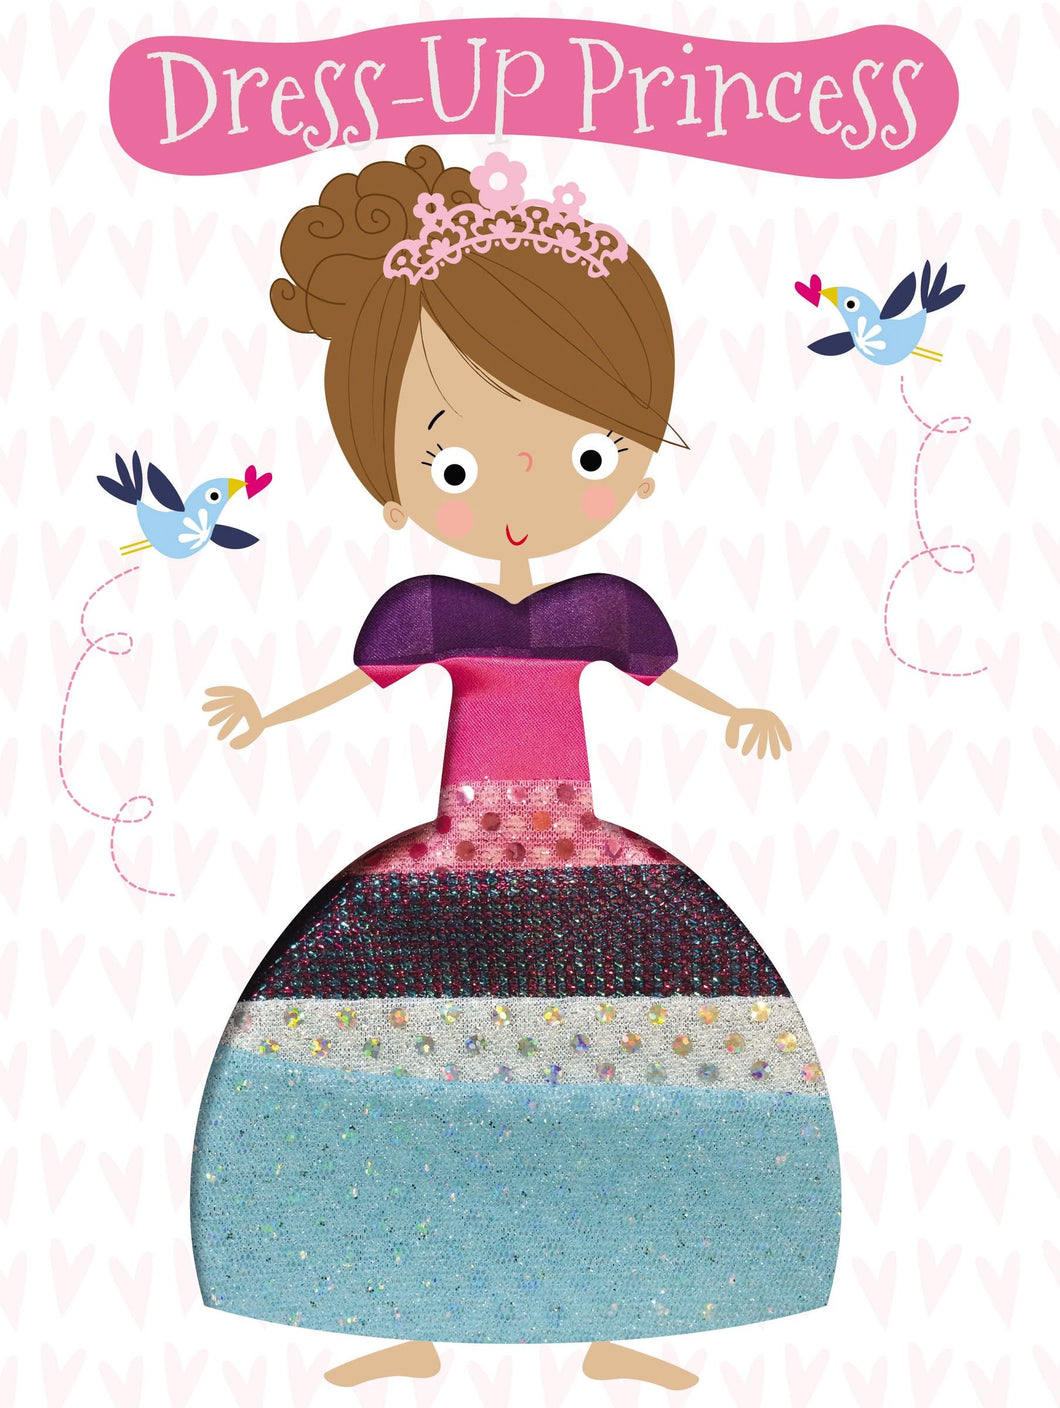 Princess Dress Up Activity Set